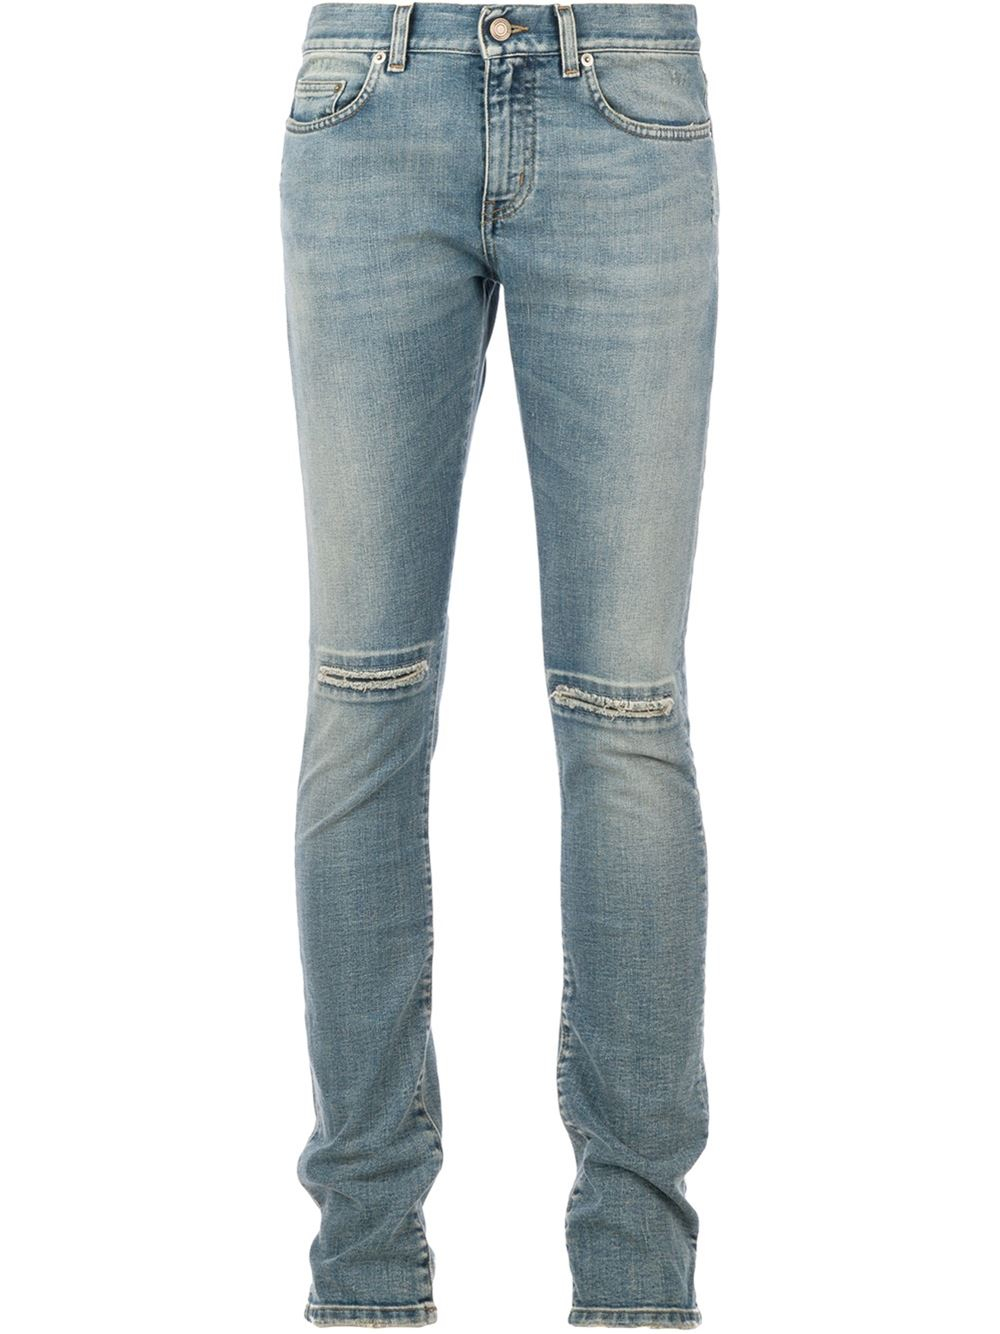 saint laurent stone washed jeans in blue for men lyst. Black Bedroom Furniture Sets. Home Design Ideas